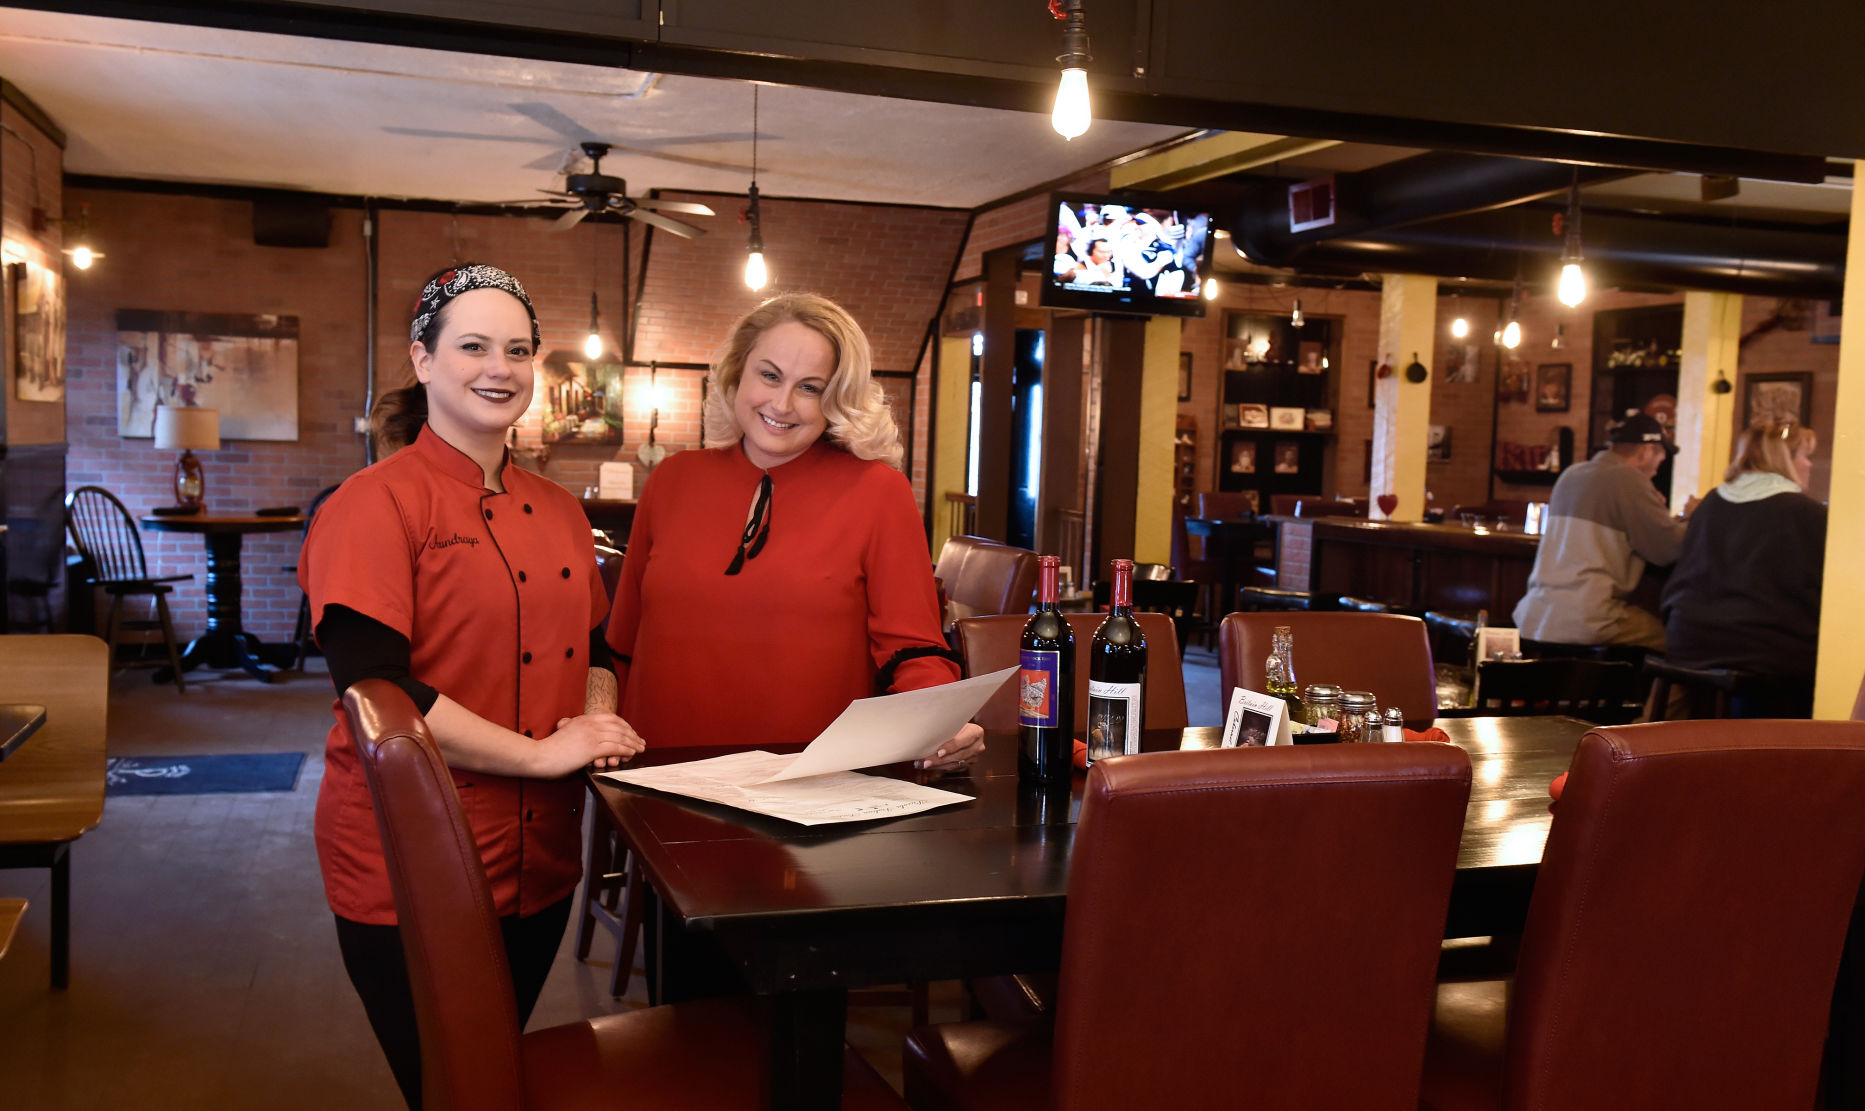 Italian Bistro Piccola Italian Bistro Replaces Kinzers Station Tavern New